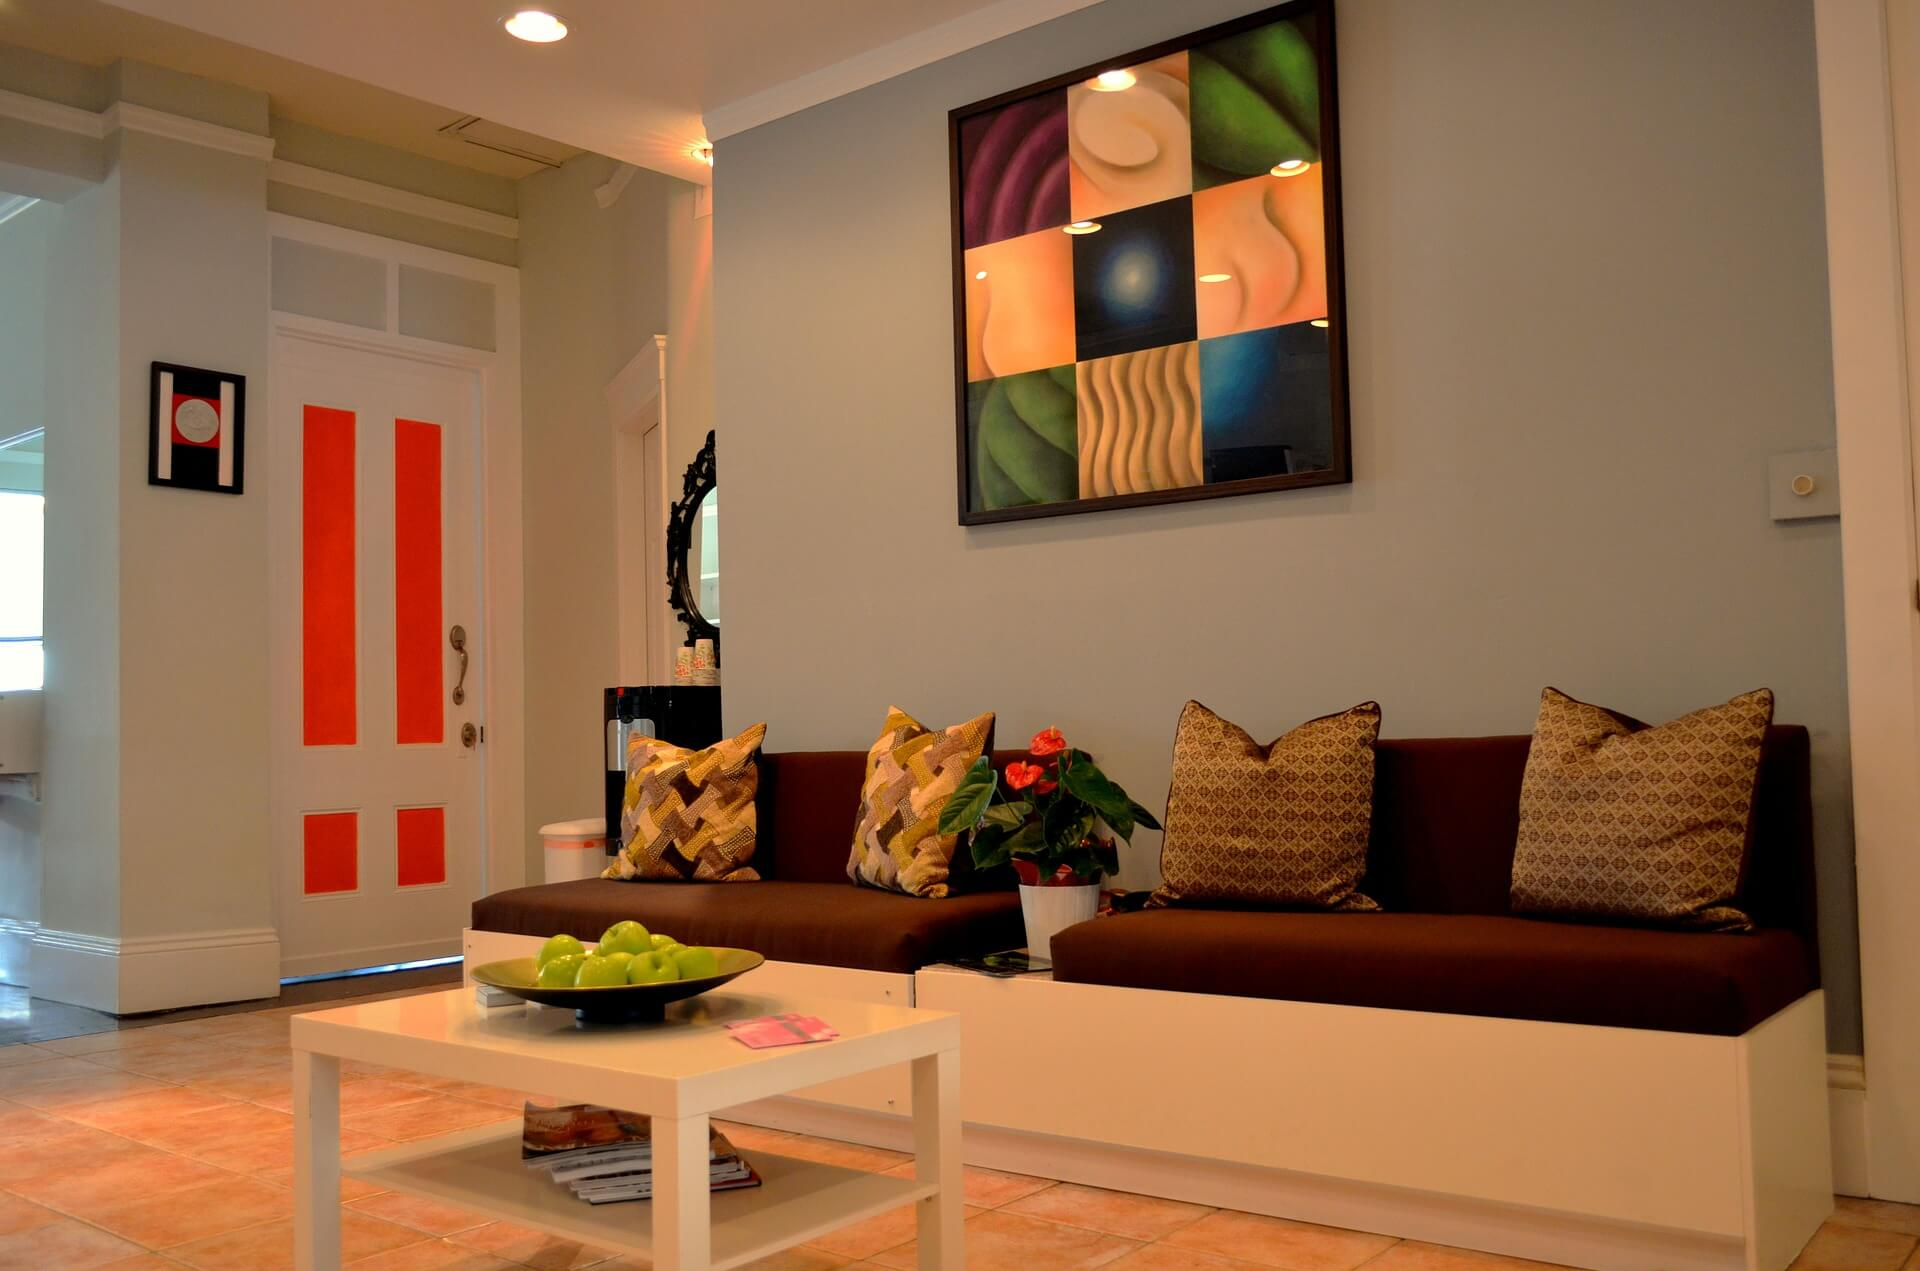 3 tips for matching interior design elements together for Decorating a house